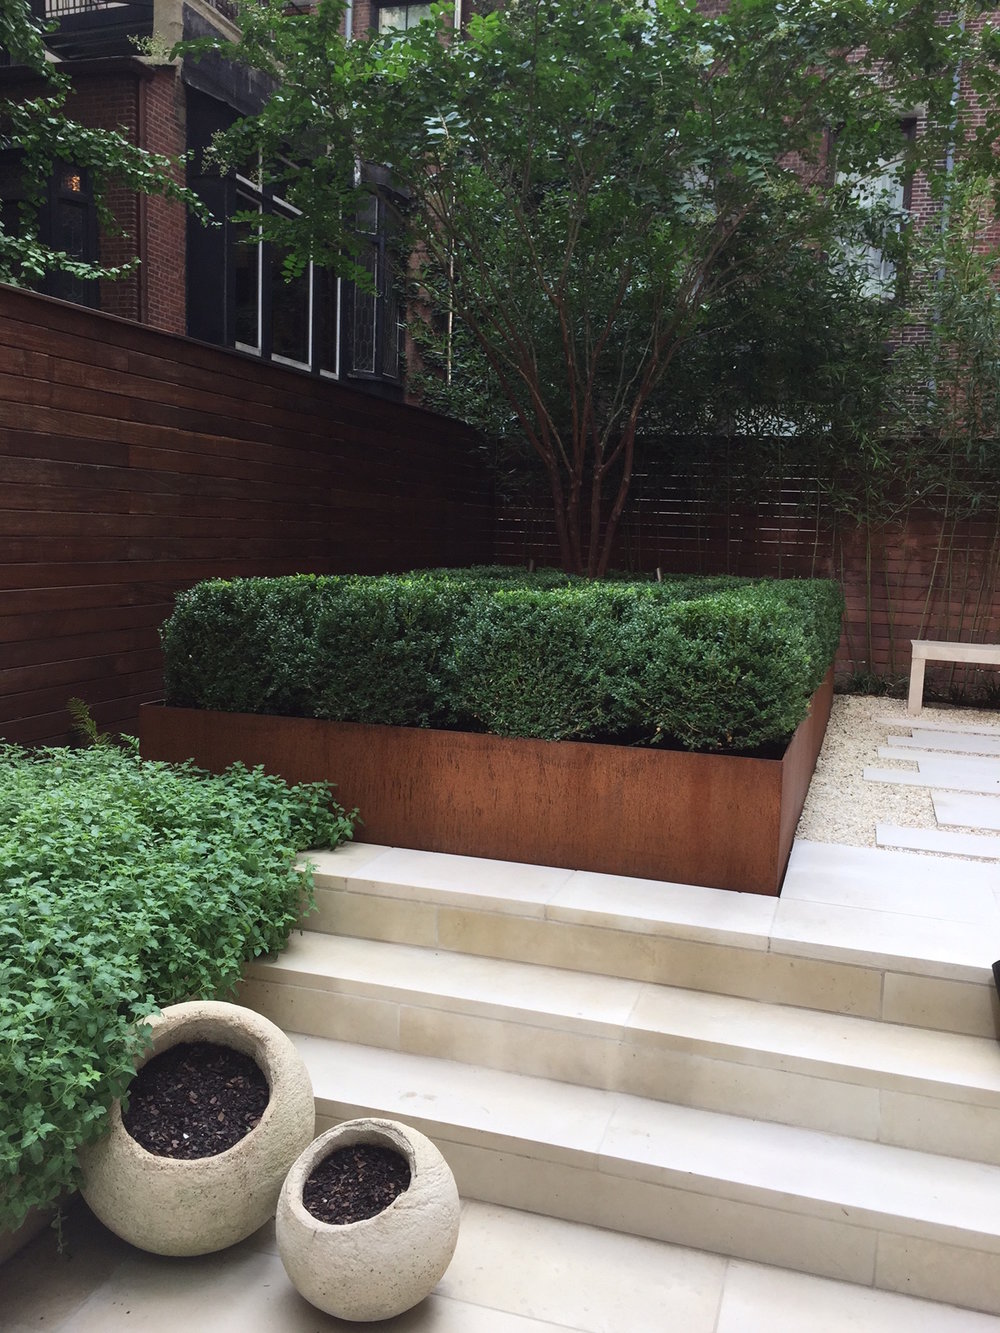 Here is boxwood used in a Corten-planter at a townhouse in Manhattan. The Client wanted low maintenance, green, and sculptural. Boxwood can be clipped to any form. Here I used the Korean type, and it is clipped to be slightly flat on top, almost like an object.